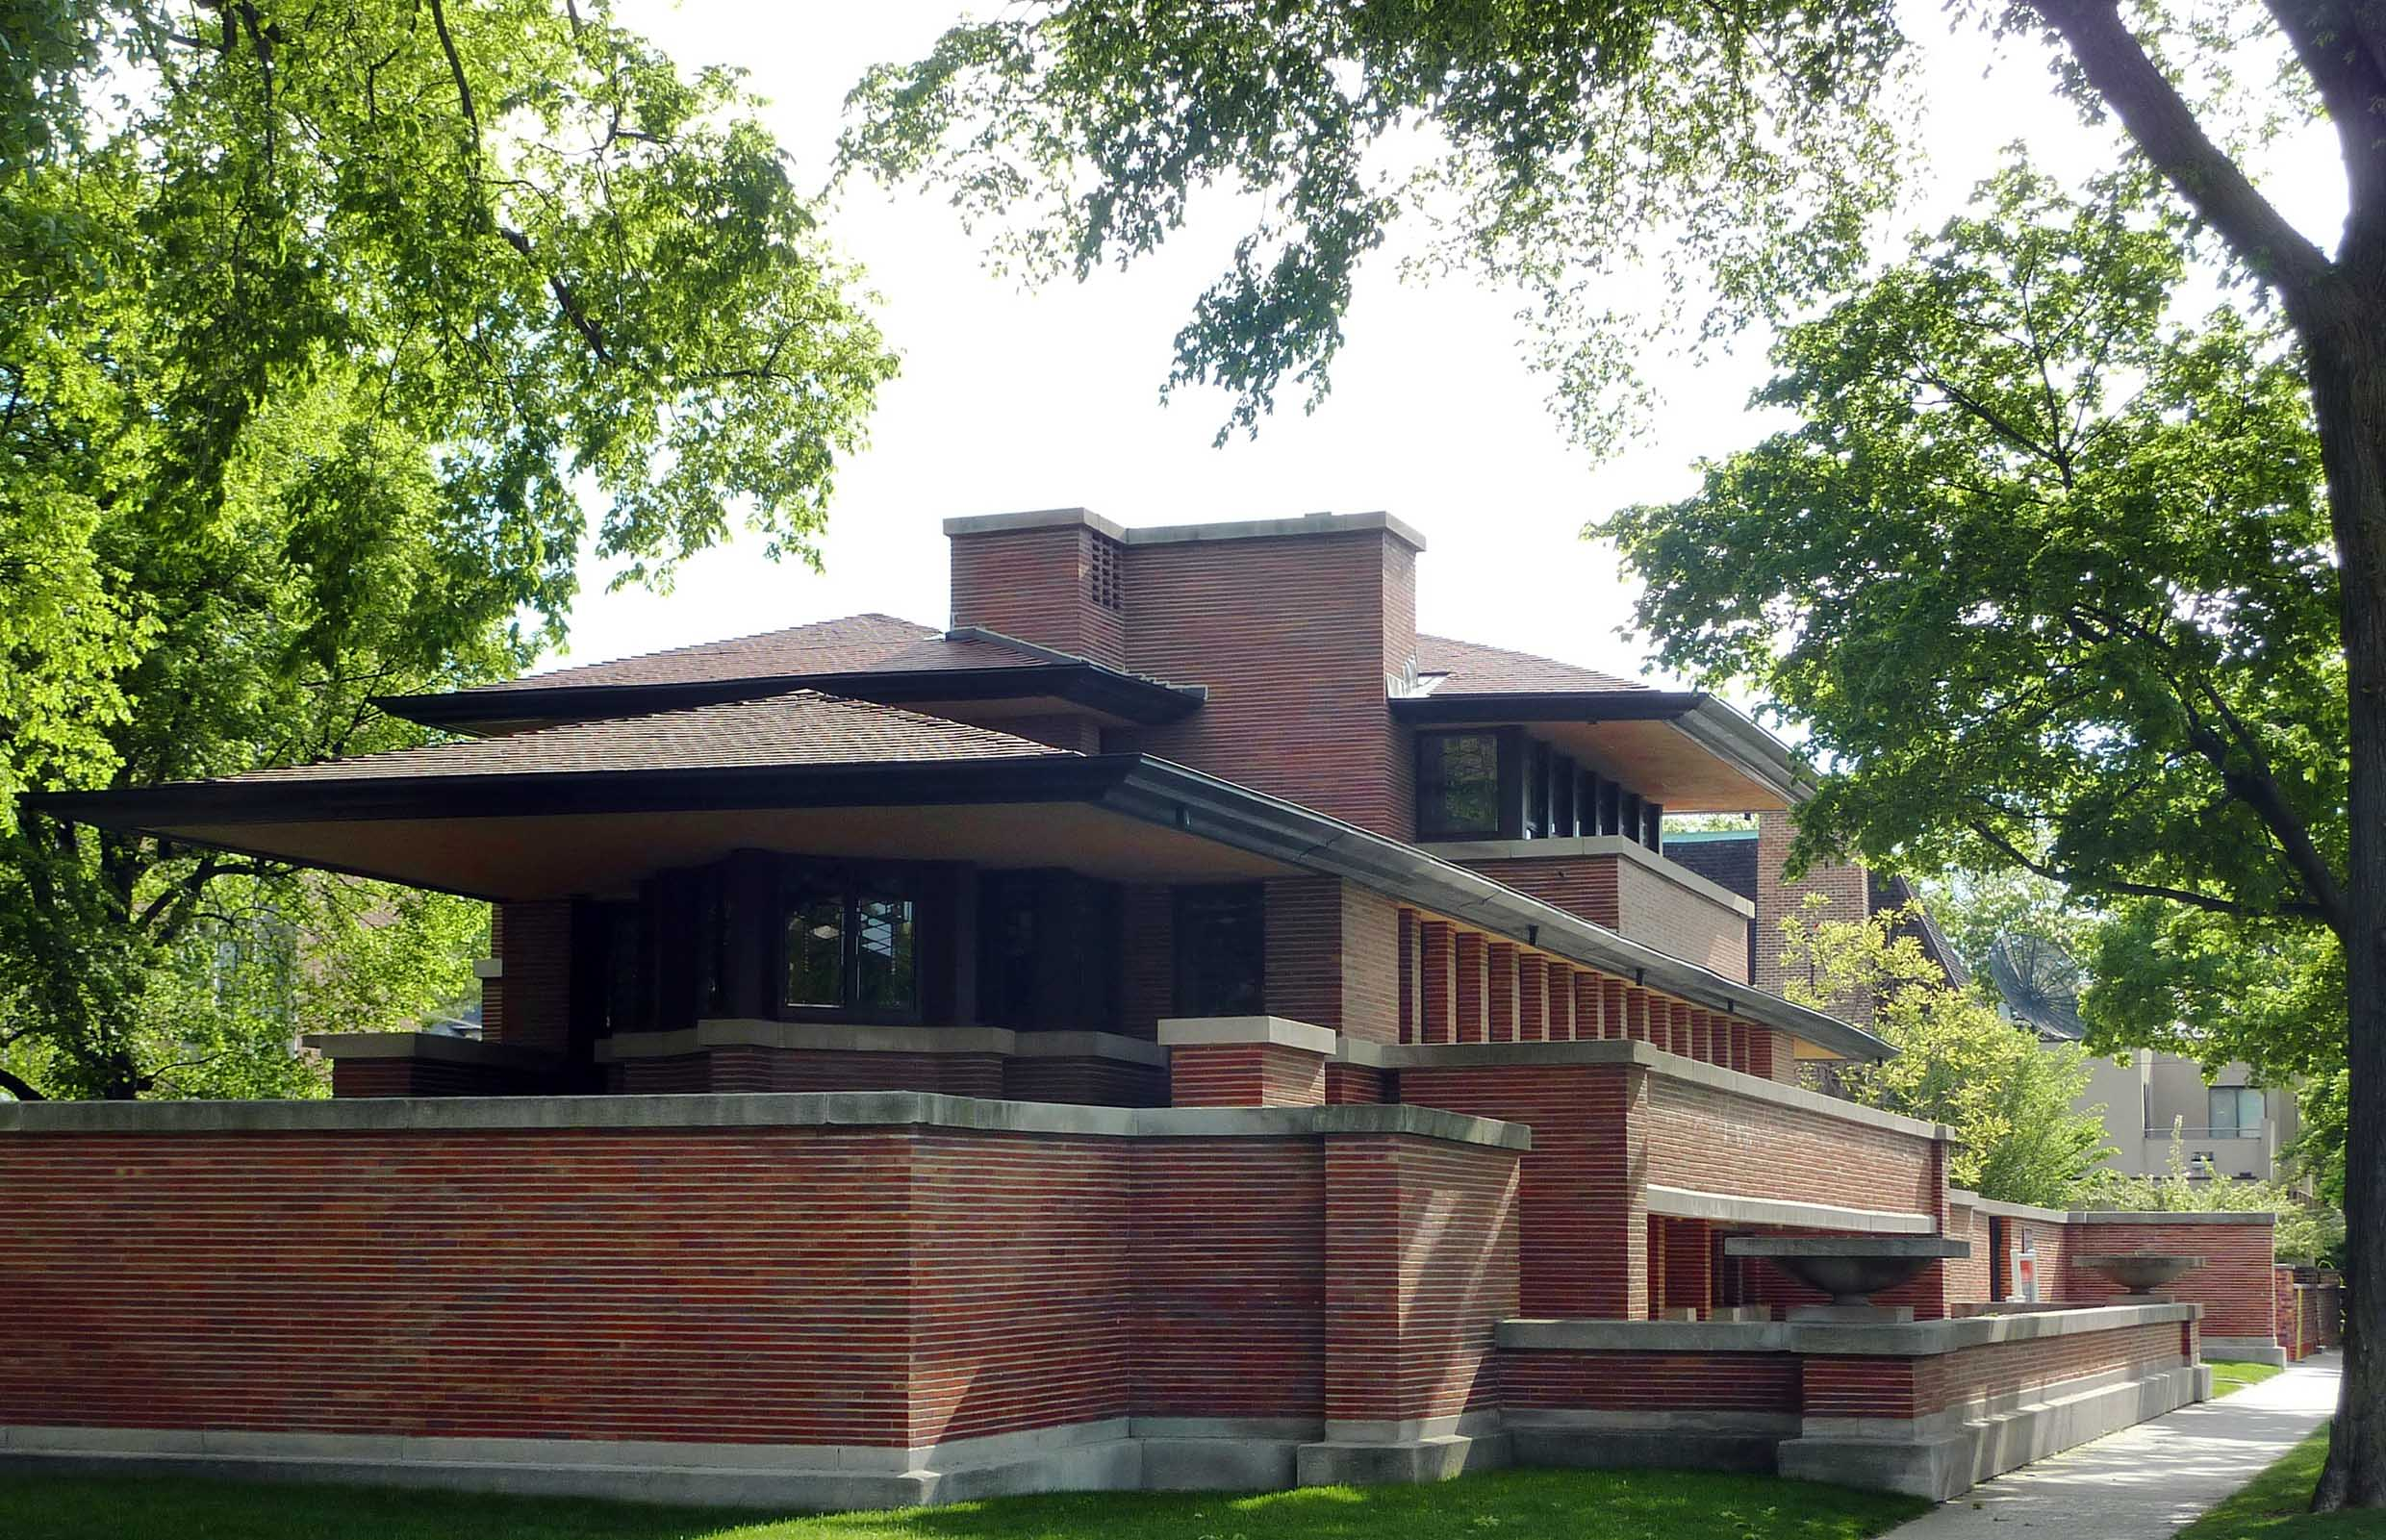 Chicago tra grattacieli expo e case nella prateria le for Frank lloyd wright stile prateria